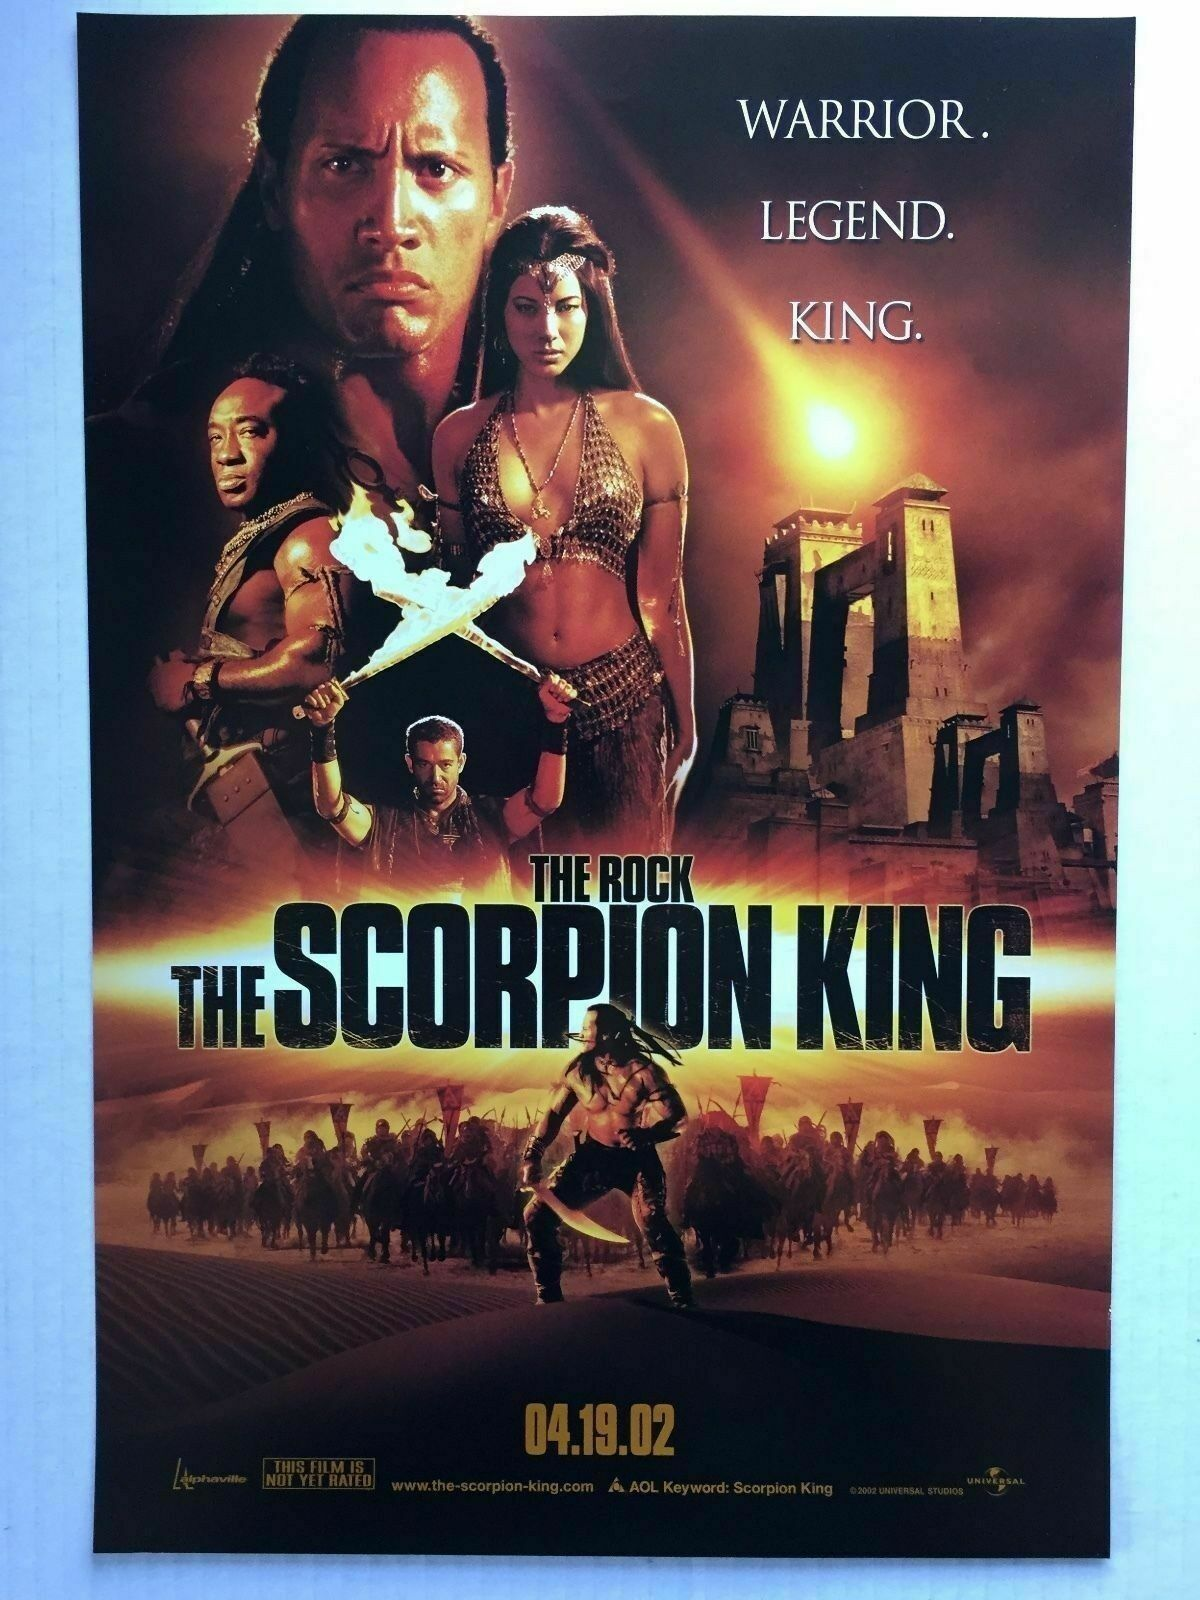 238551 THE SCORPION König MOVIE DWAYNE JOHNSON Wand Drucken POSTER CA